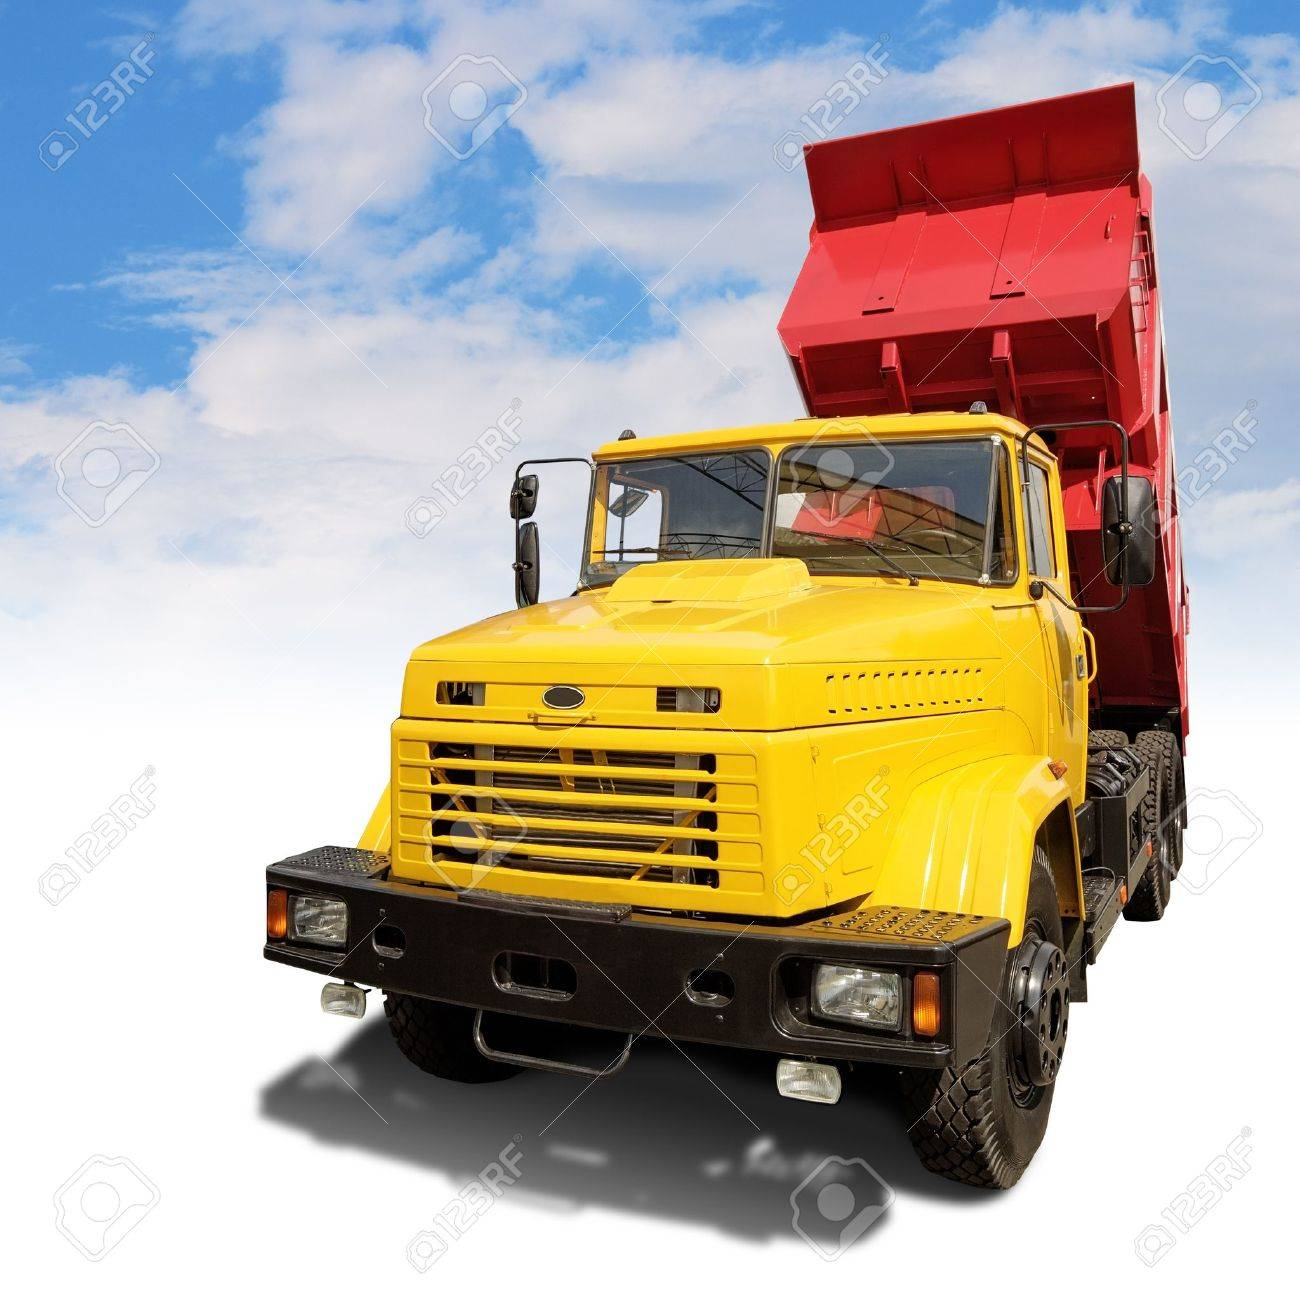 heavy industrial tipper with clipping path - 10160359